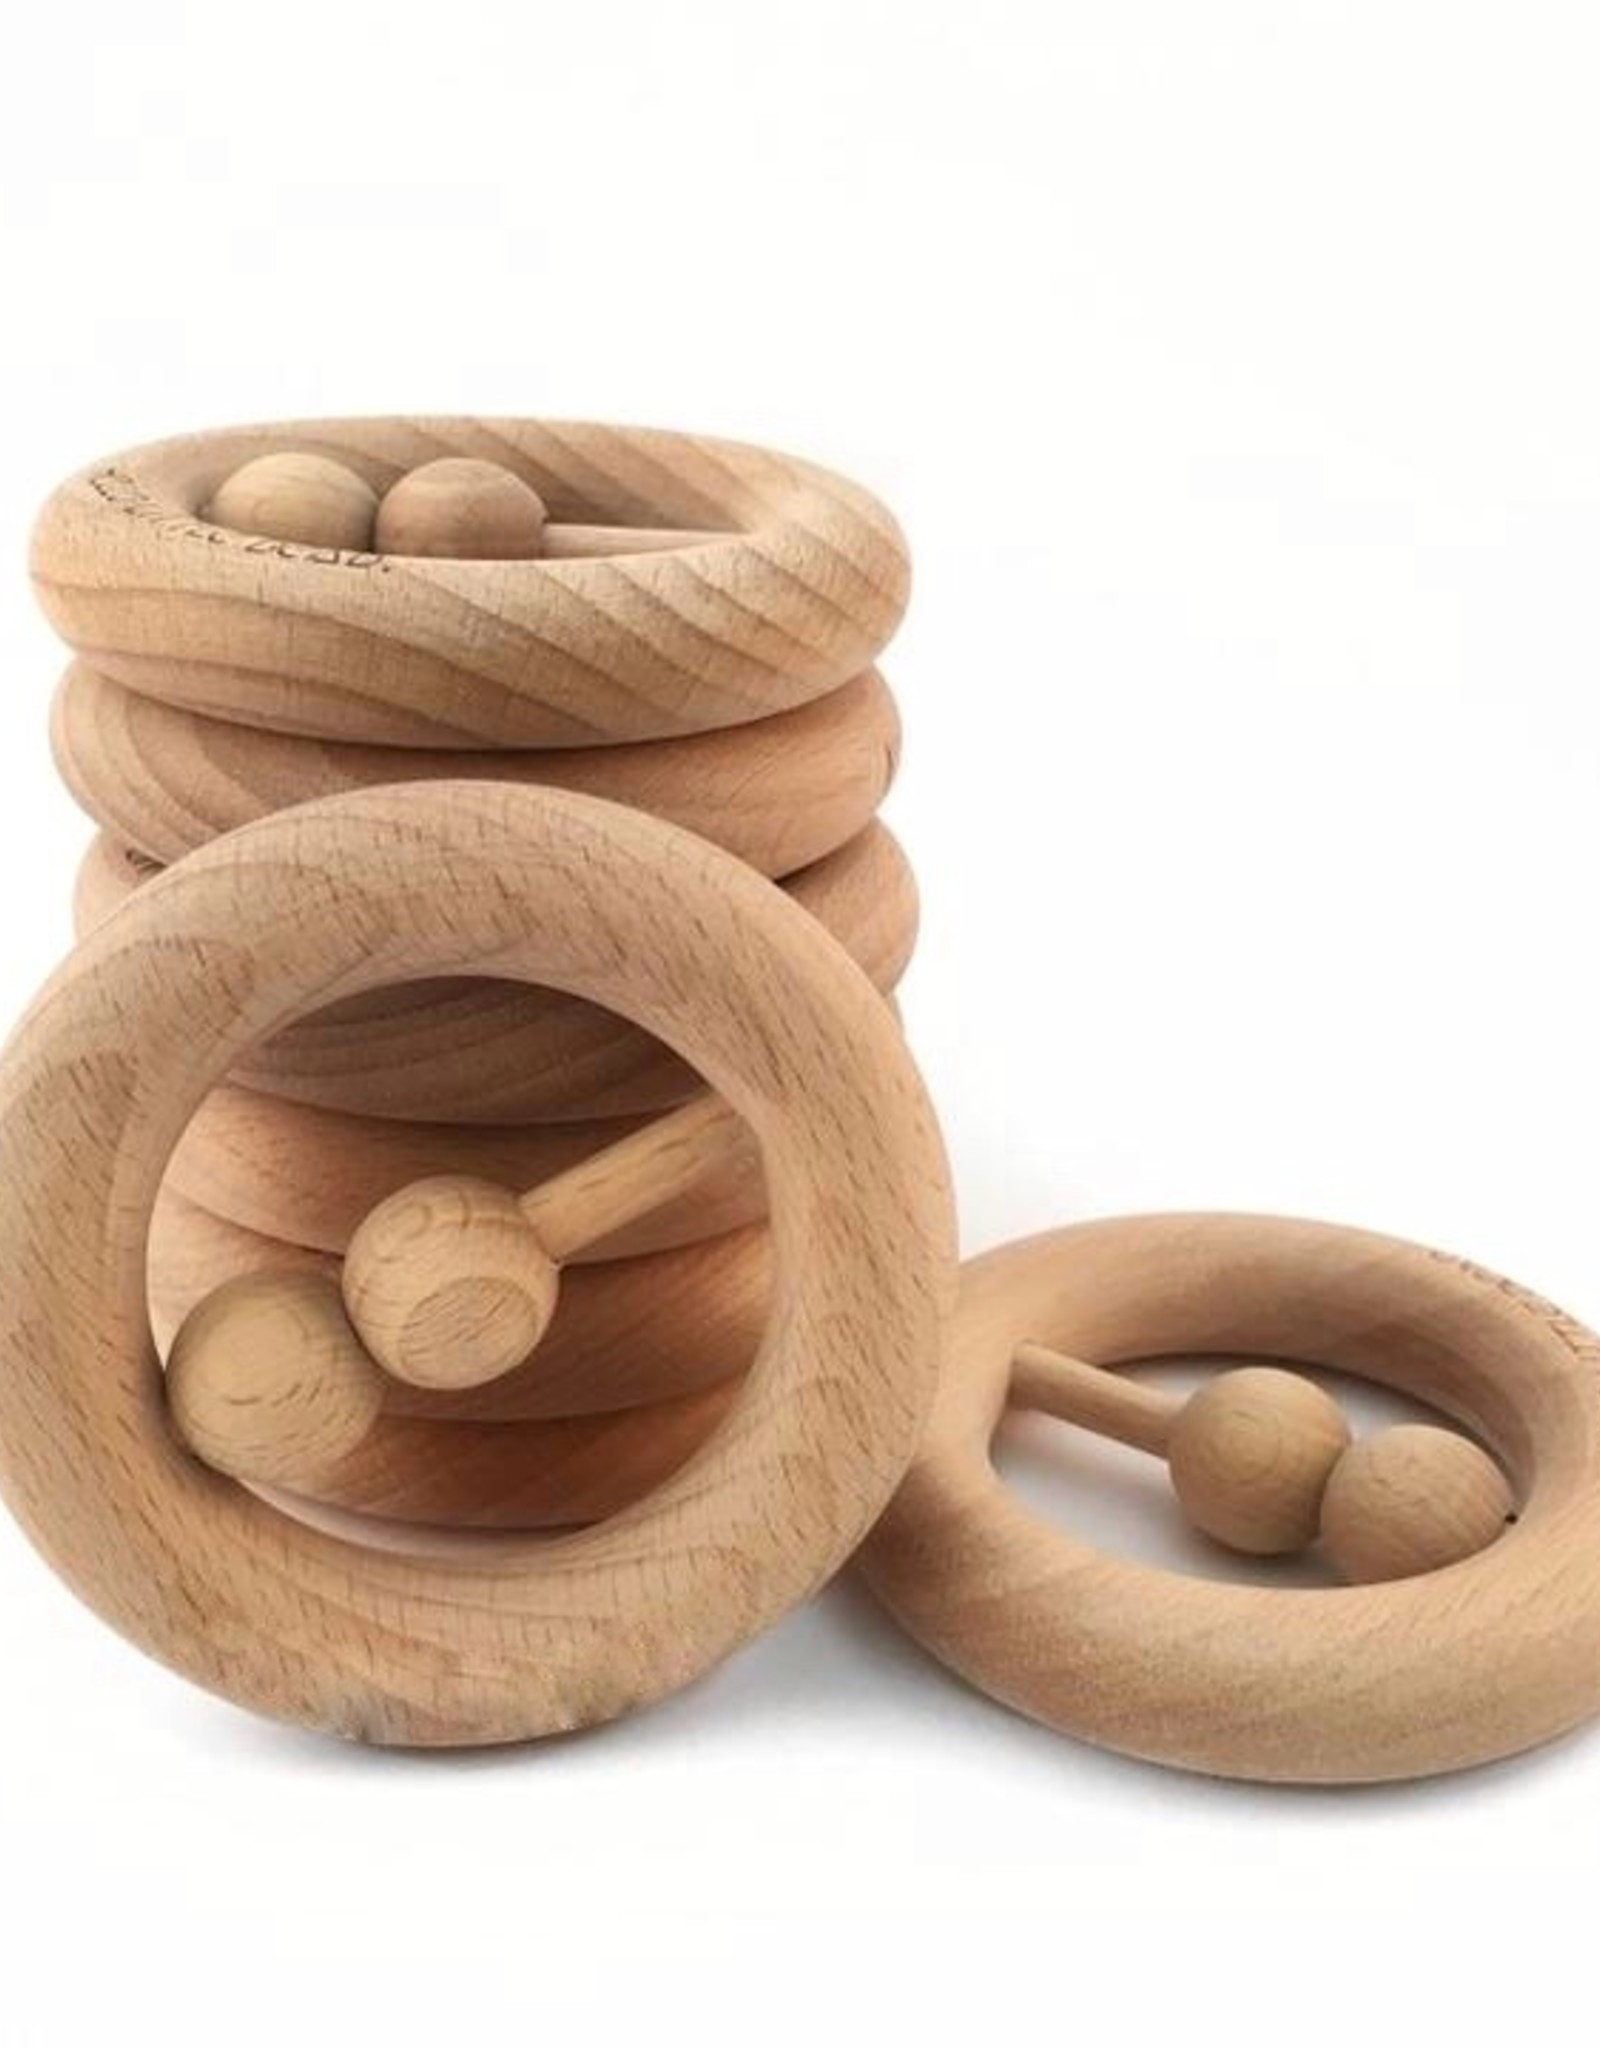 My Little Giggles My Little Giggles - Round Wooden Teether